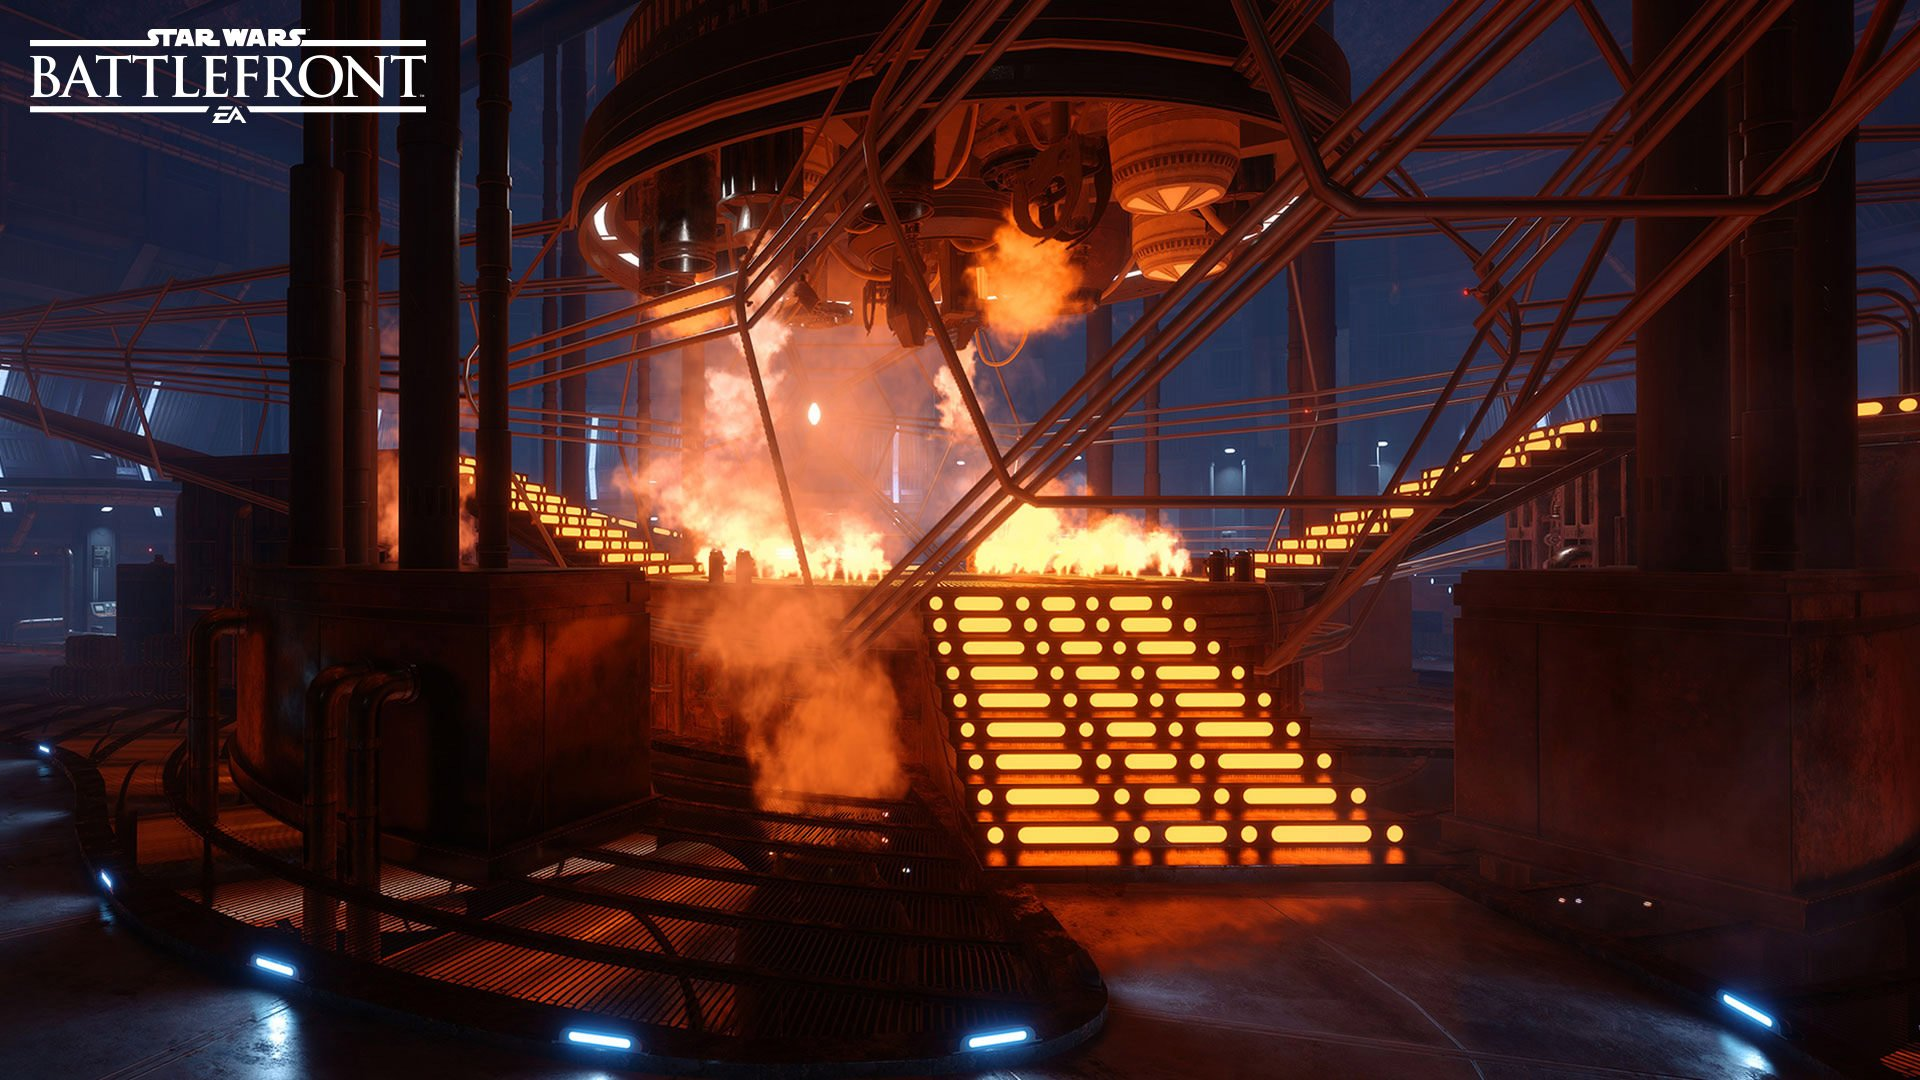 Star Wars Battlefront: Bespin review